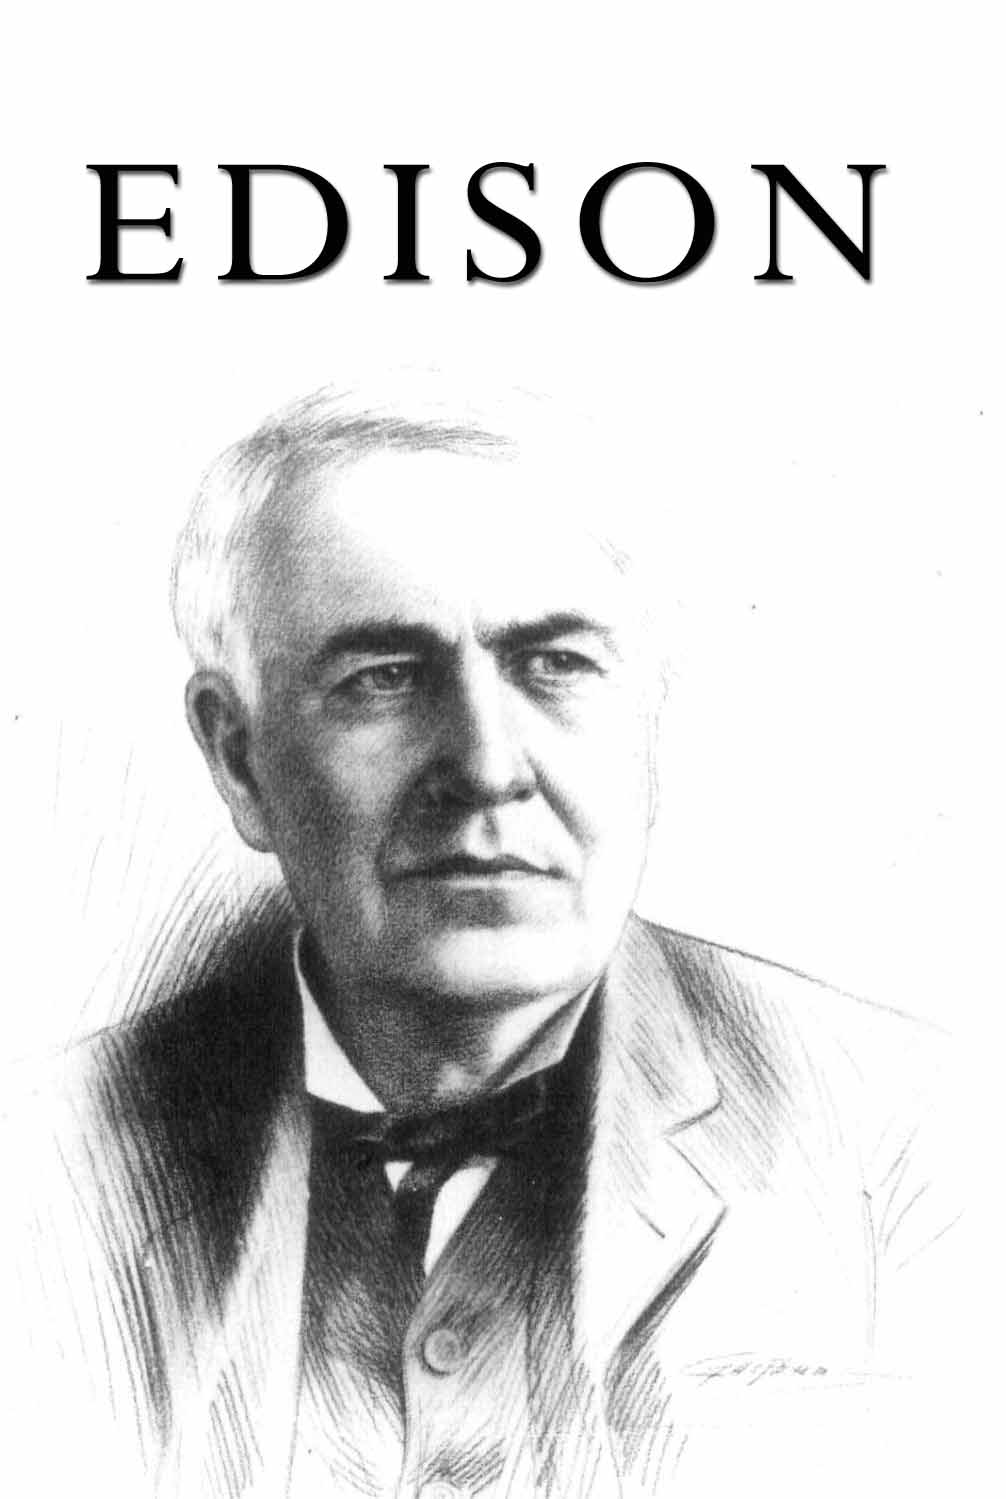 Rare edison electric pen to go under the hammer topnews for The edison